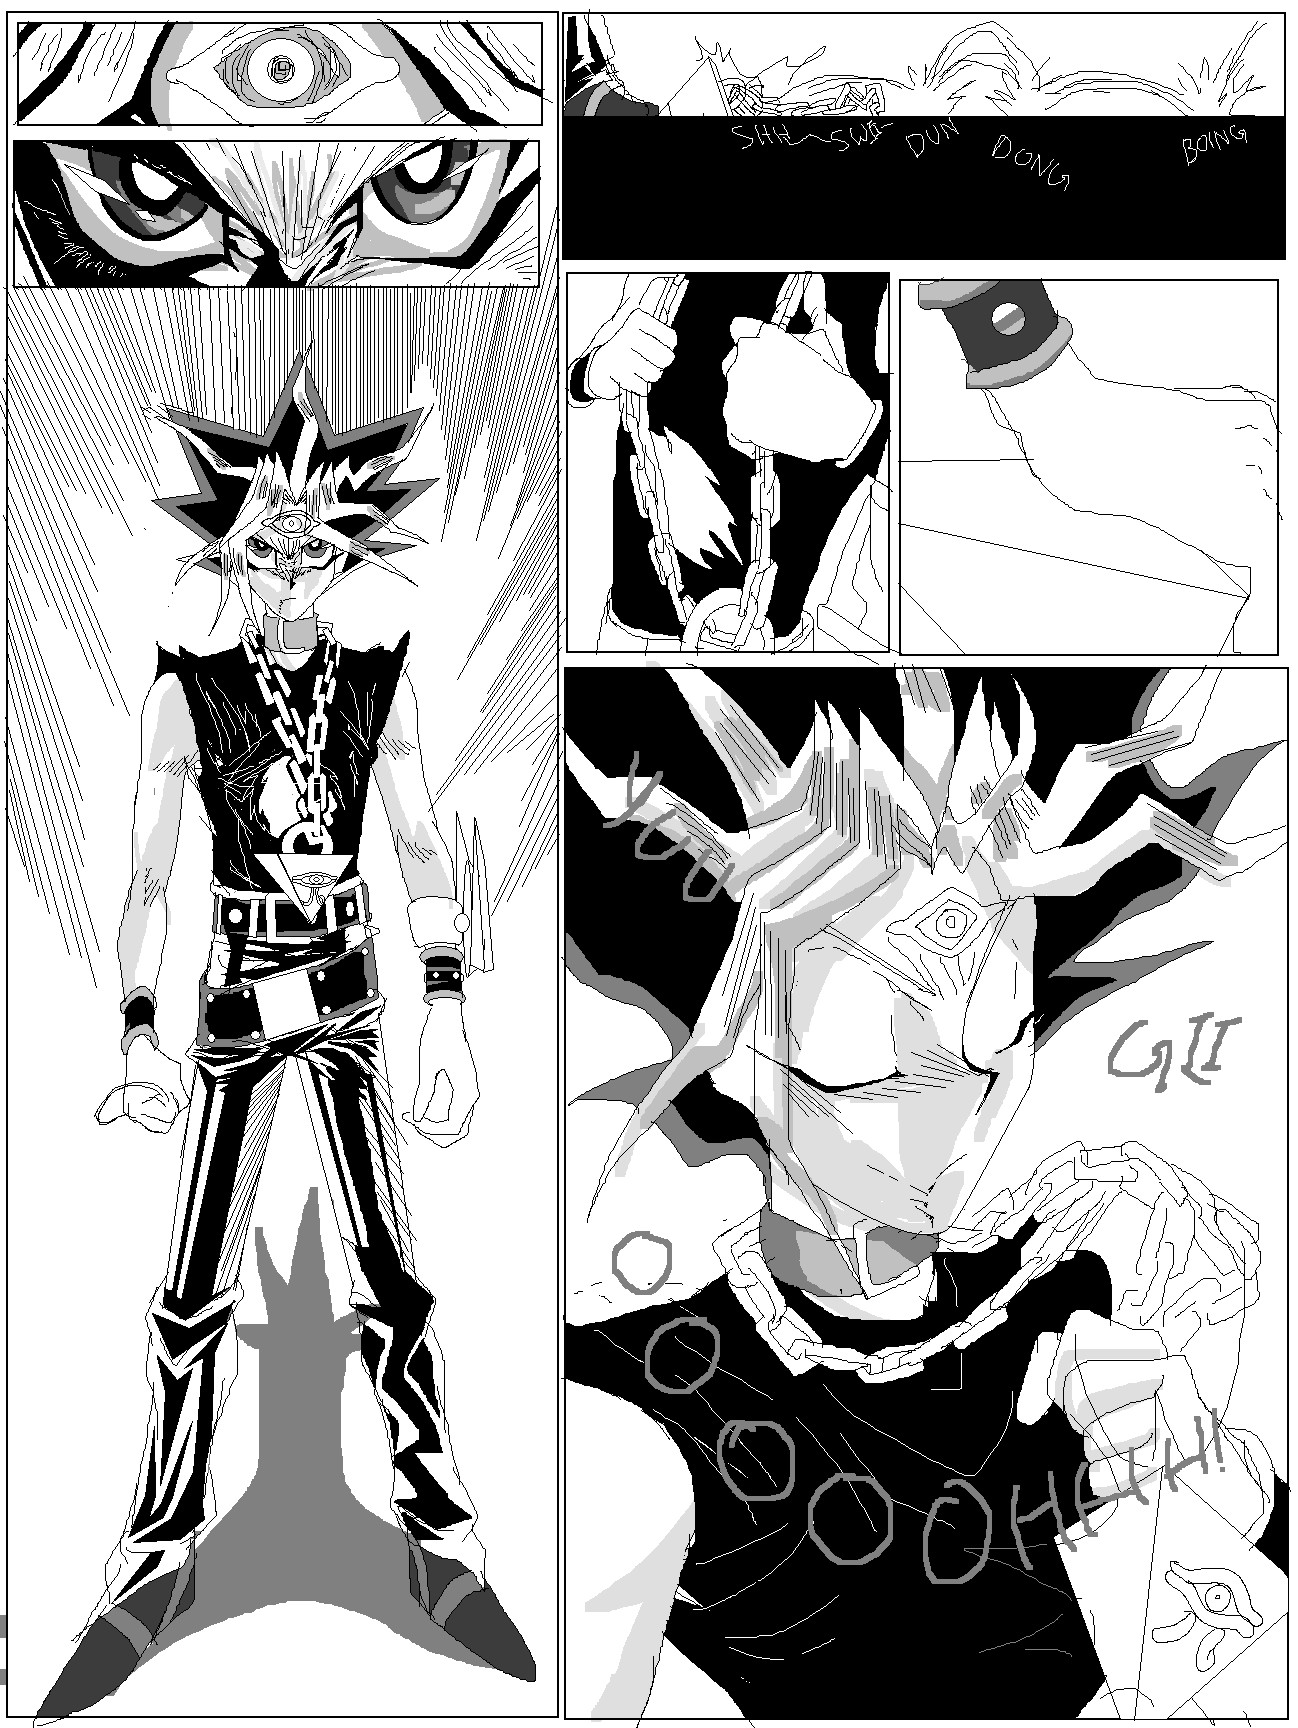 Yu-Gi-Oh! bonds beyond time II Chapter 4 Hfhfdhfdh_by_mrawesome45-d77redc